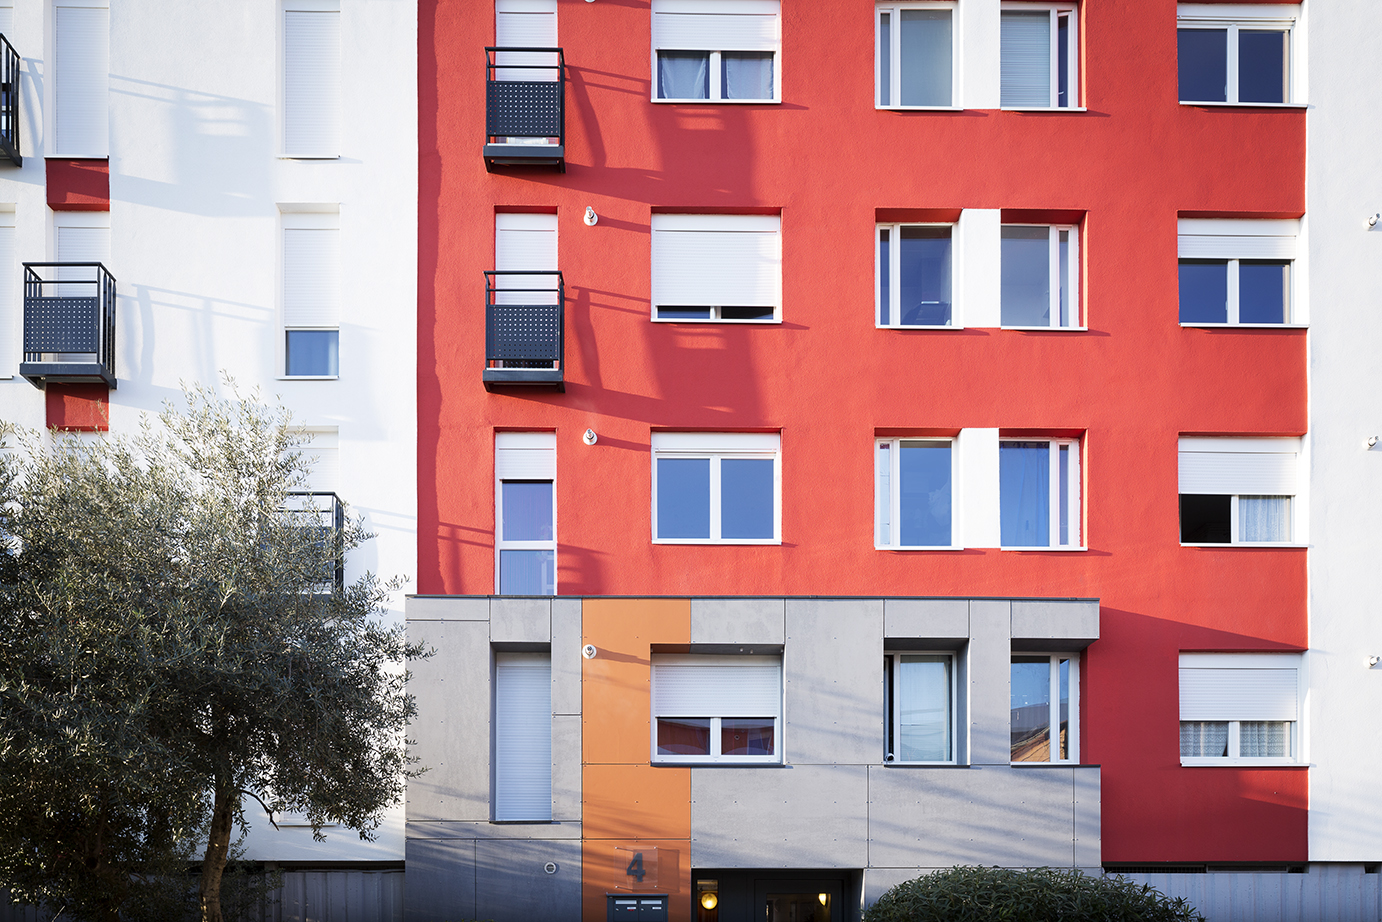 mc-lucat-residence-lemasson-montpellier-imagine-architectes-2016